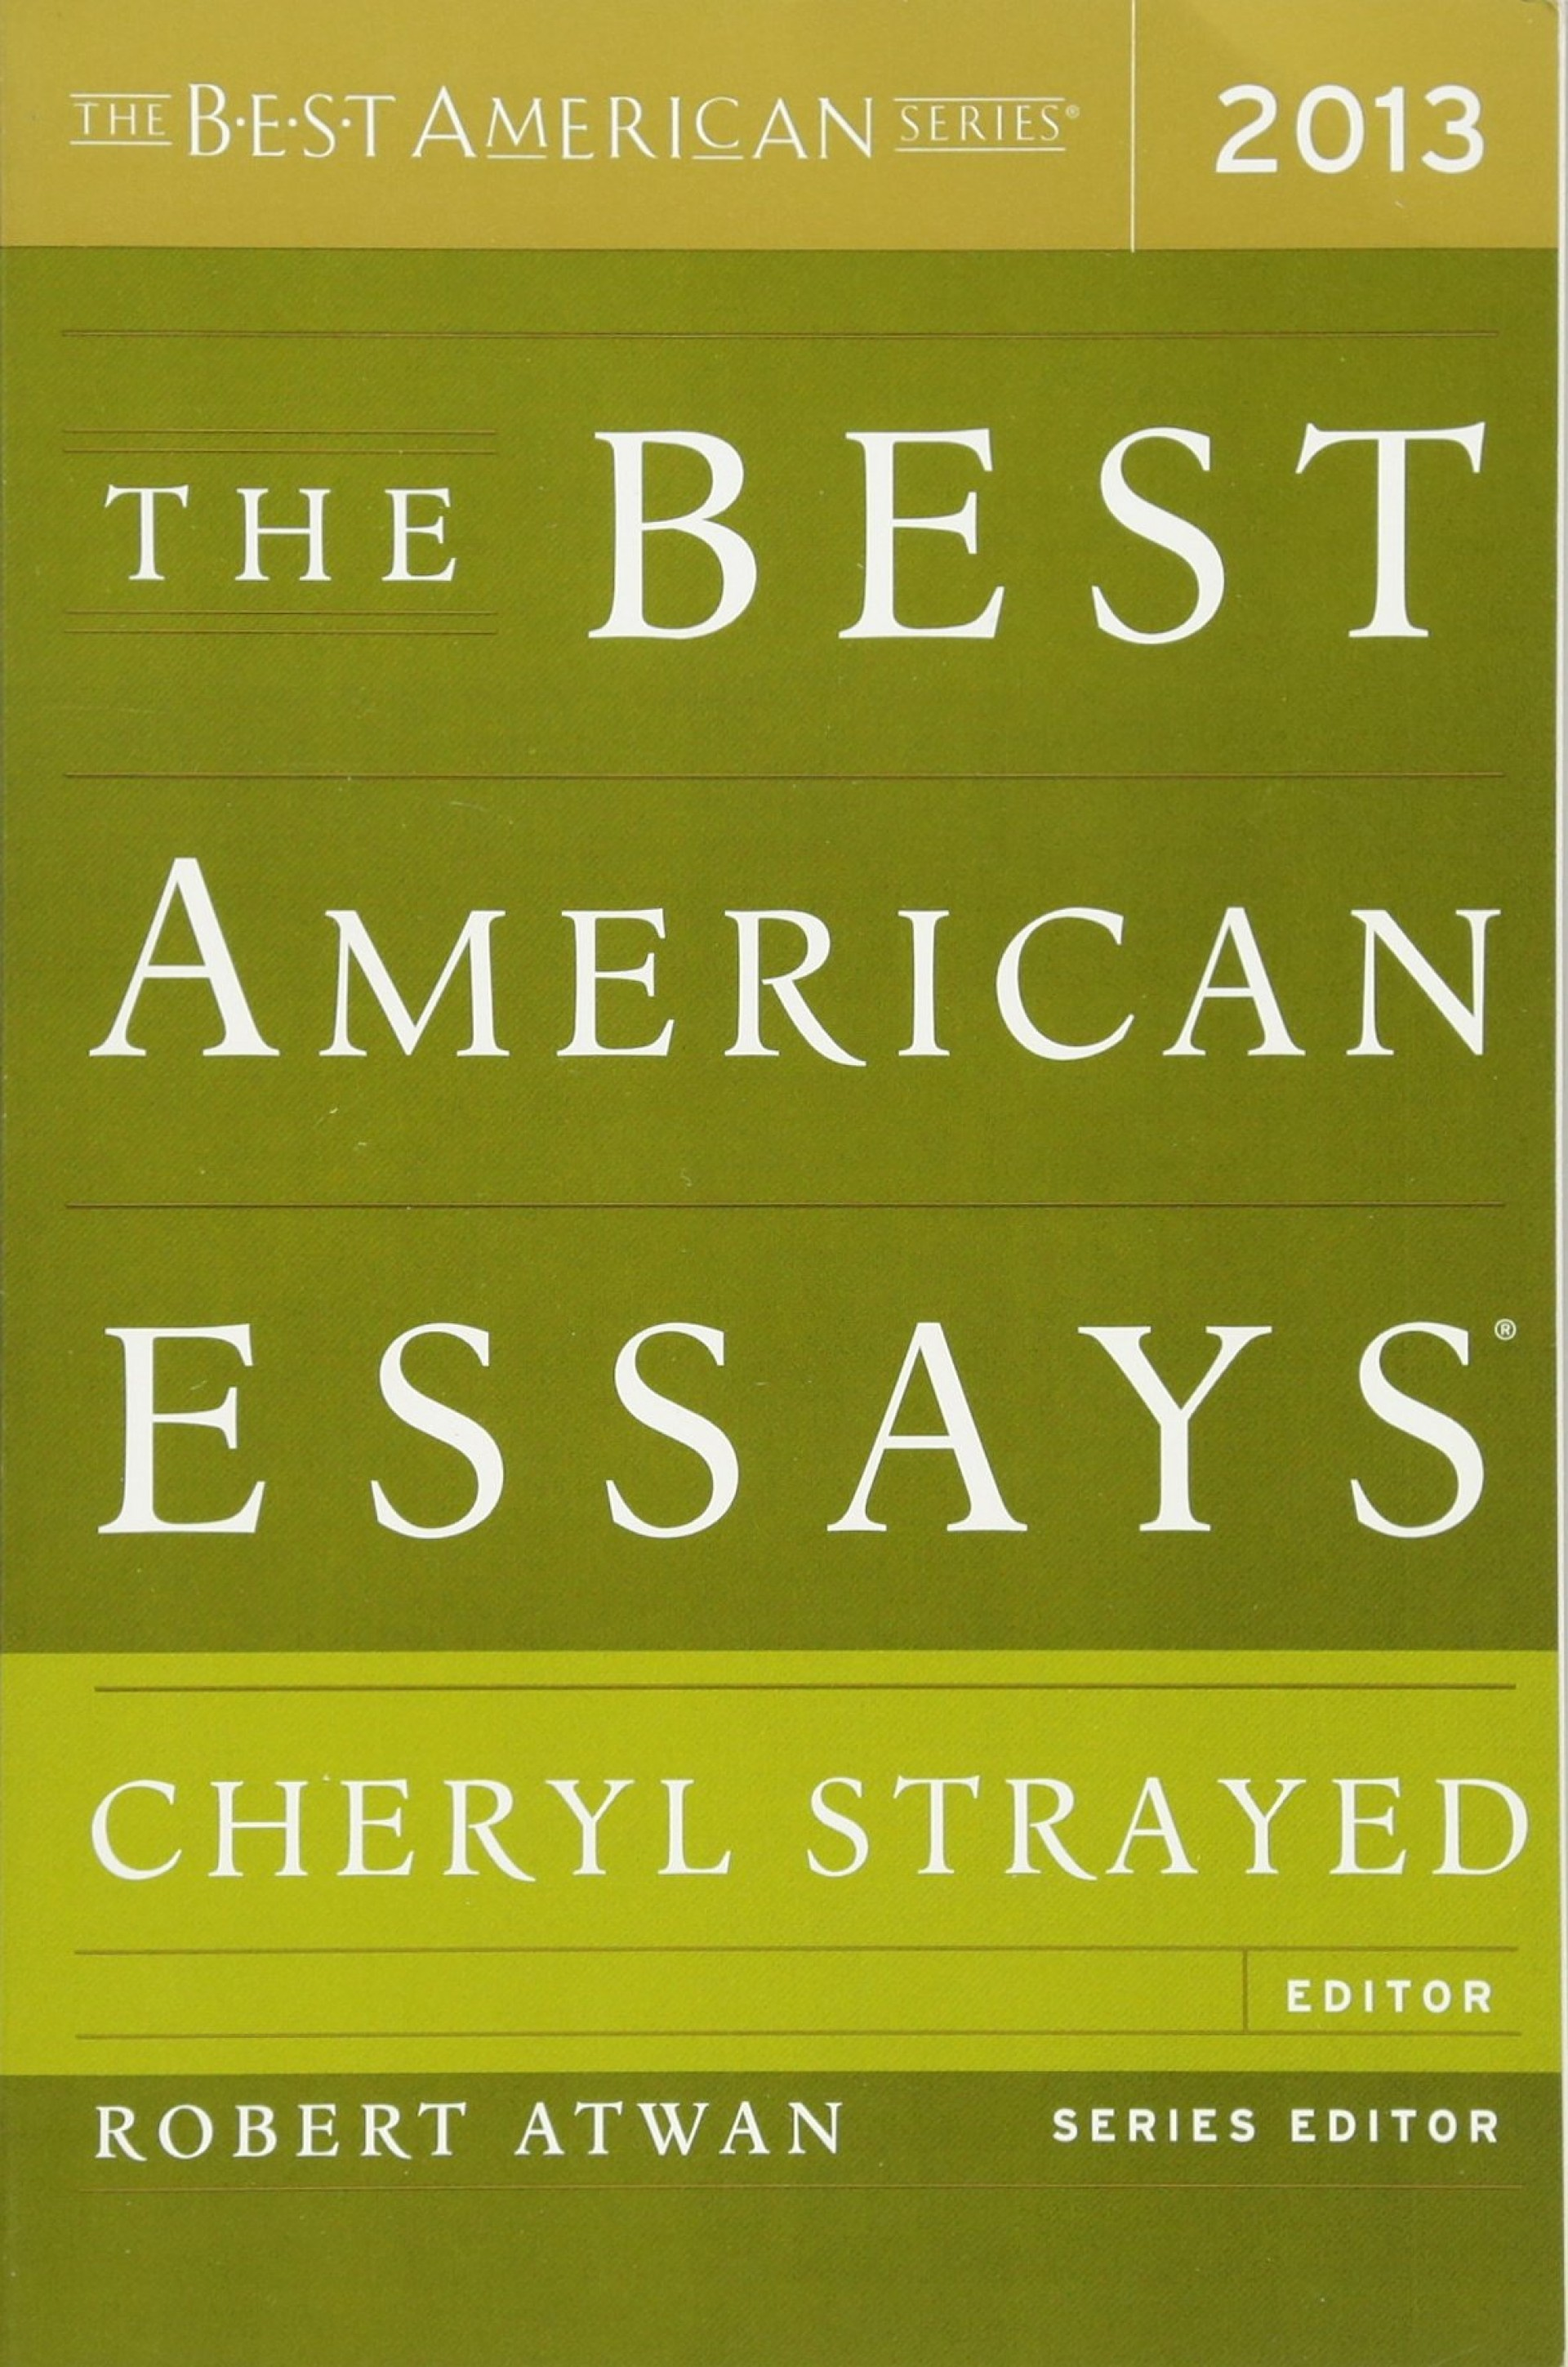 002 Essay Example 81nkls2j9vl Best American Striking Essays 2017 Pdf Submissions 2019 Of The Century Table Contents 1920